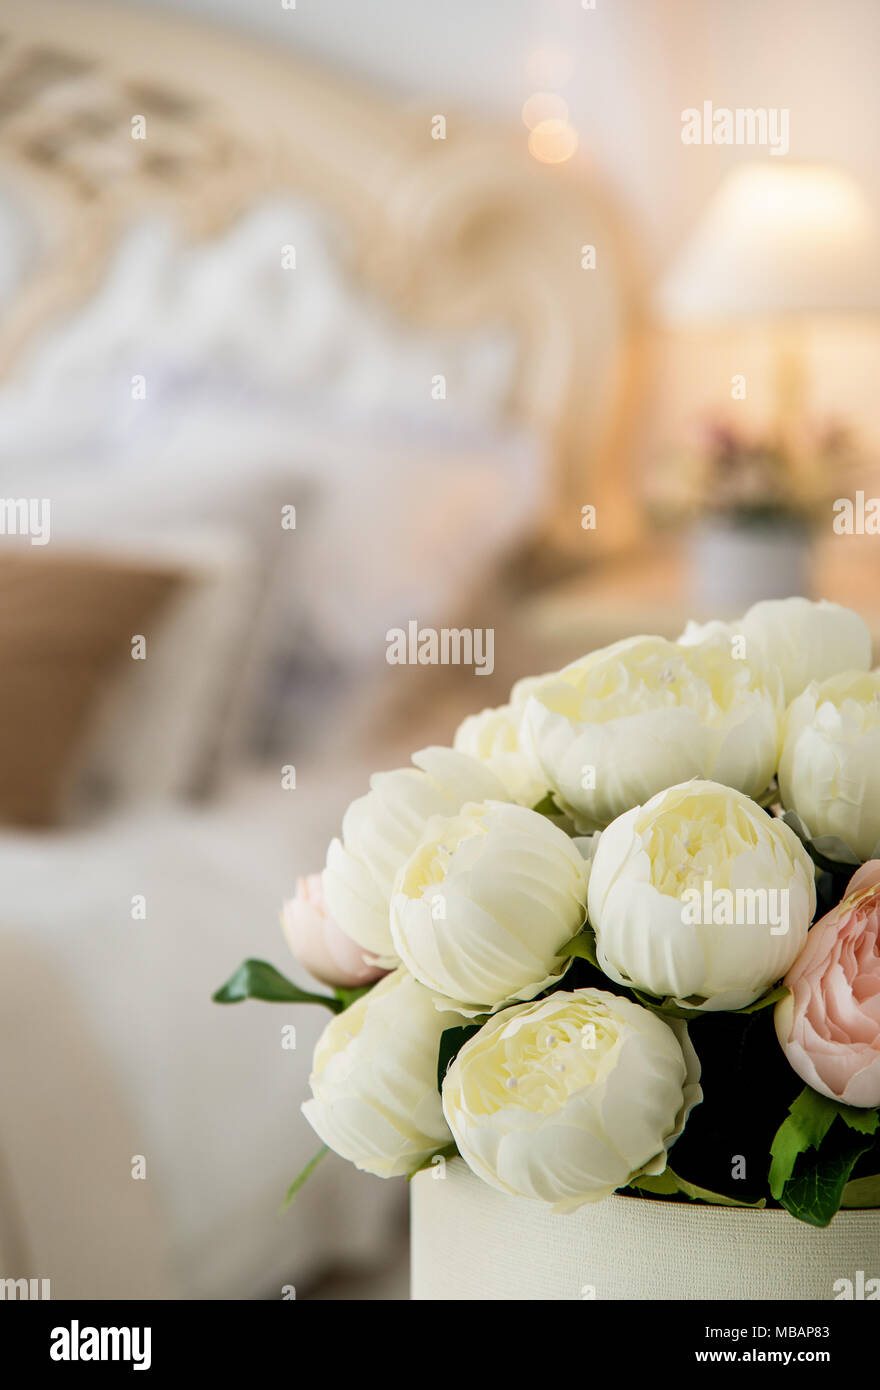 Wedding Flowers Bridal Bouquet In White Classic Bedroom Stock Photo